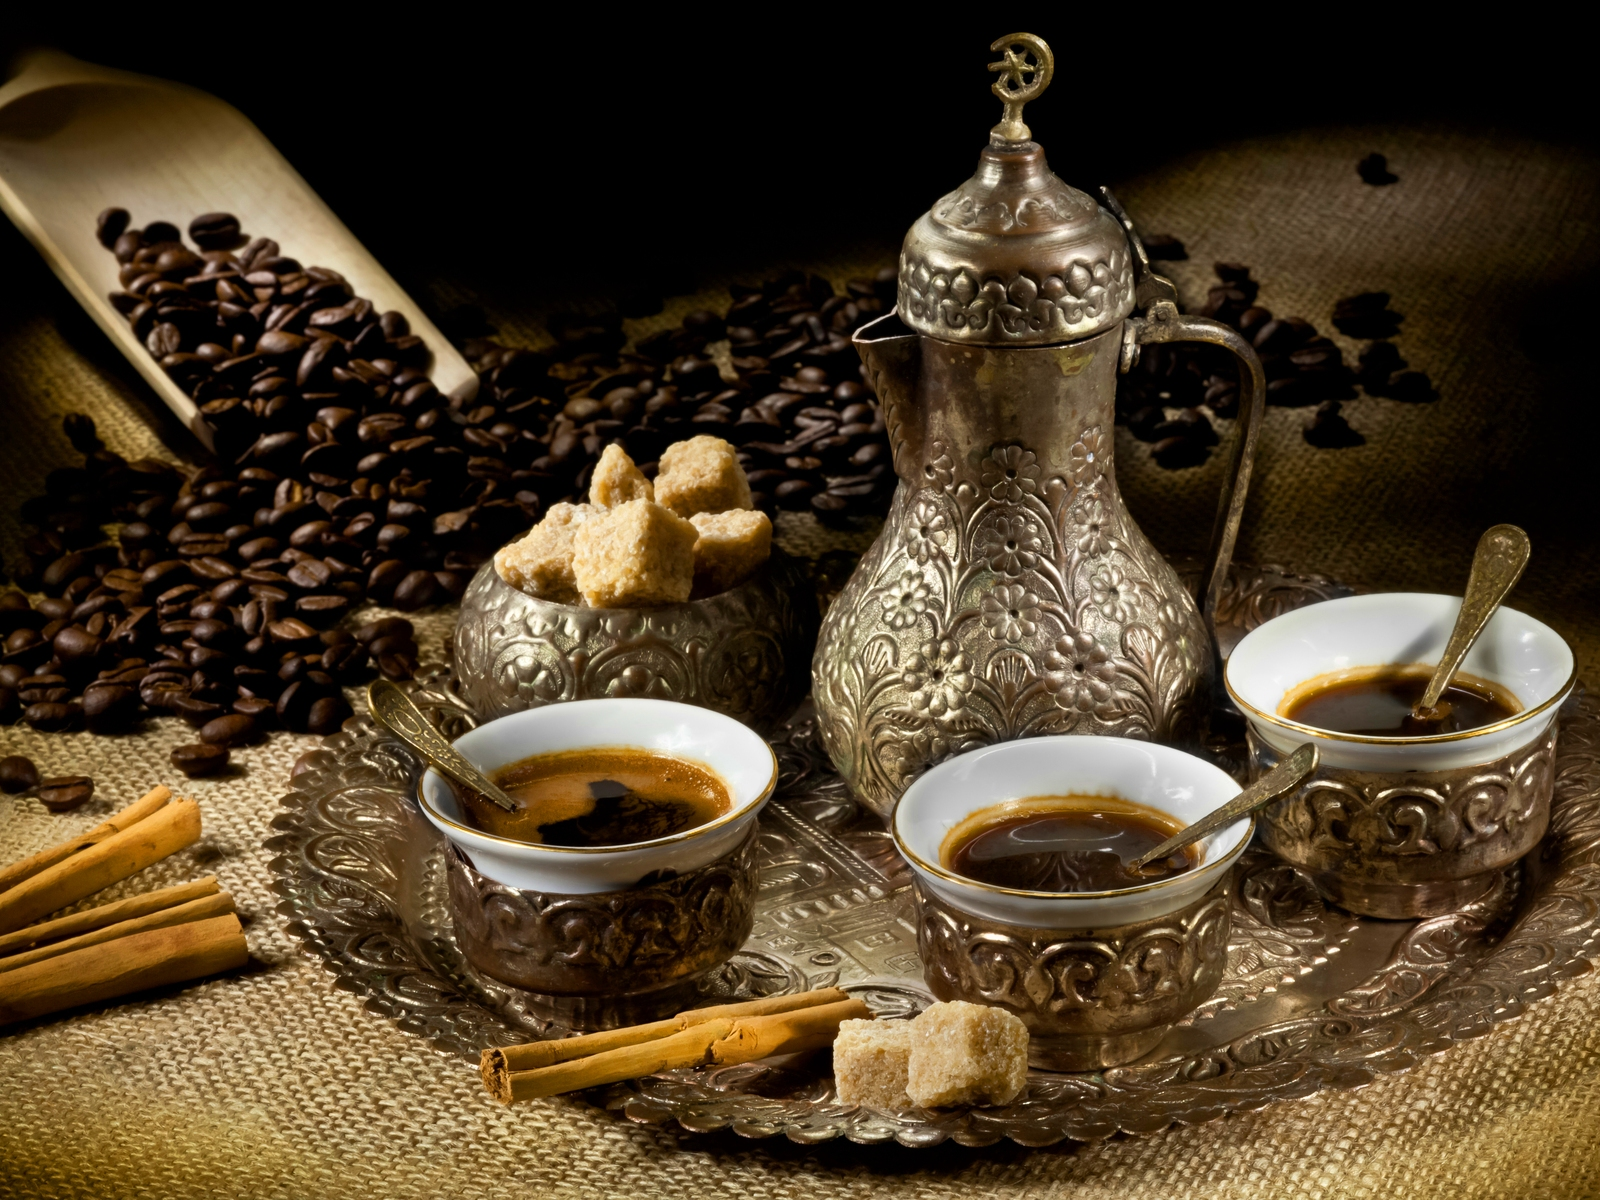 Arabica Tea Coffee Zeist Coffee Wallpaper And Background Image 1600x1200 Id